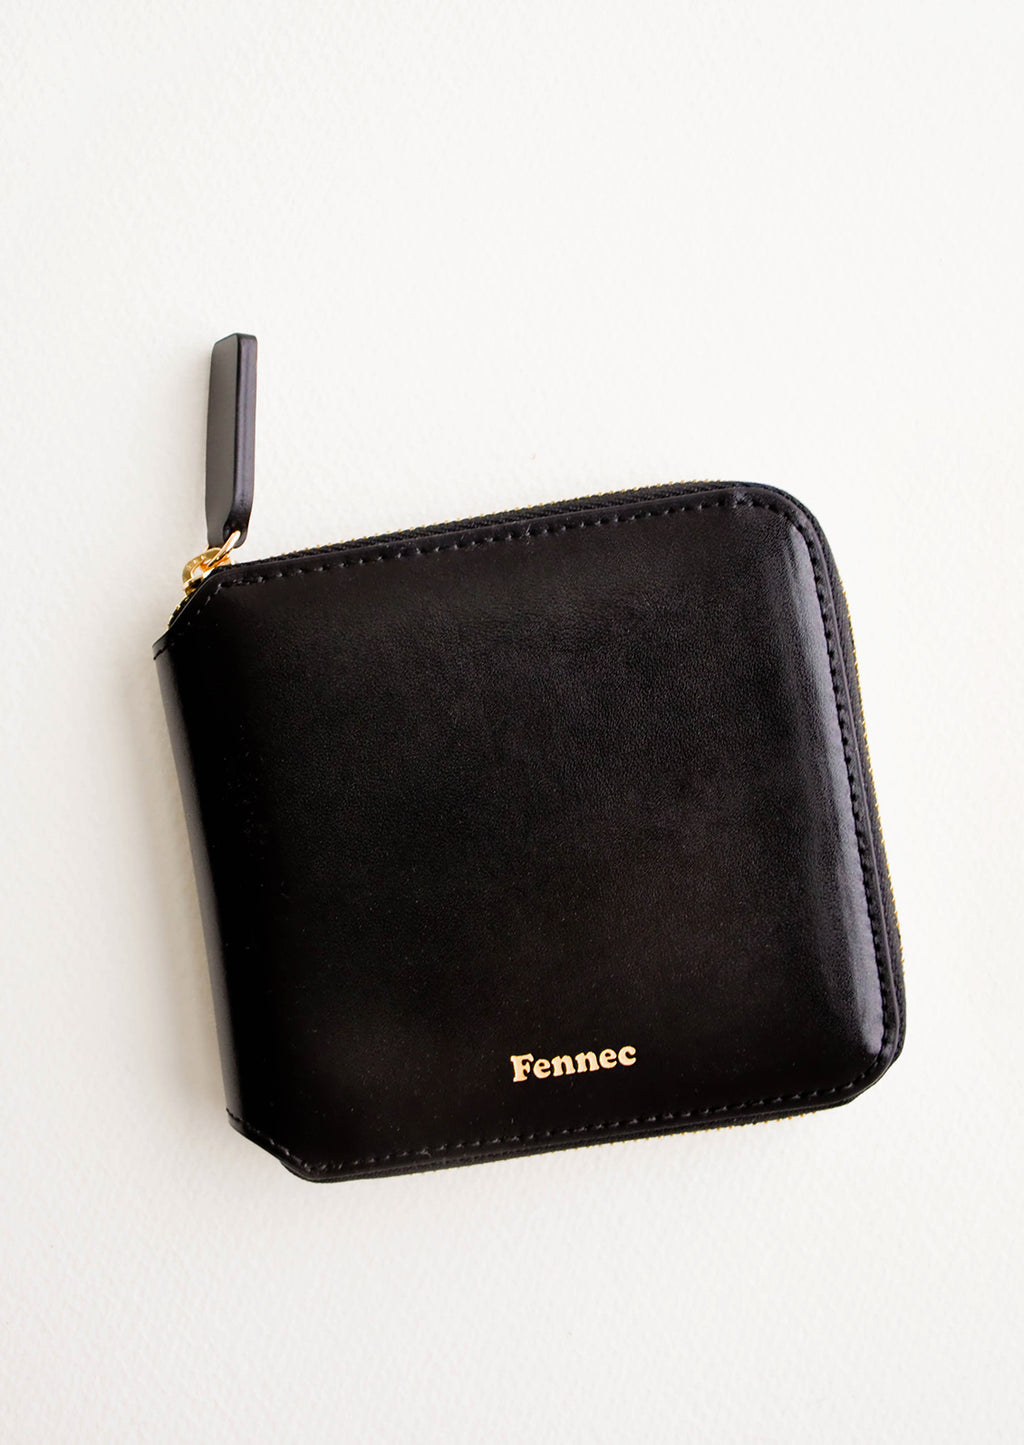 Black: Black leather wallet that zips on three sides, with matching tab pull.